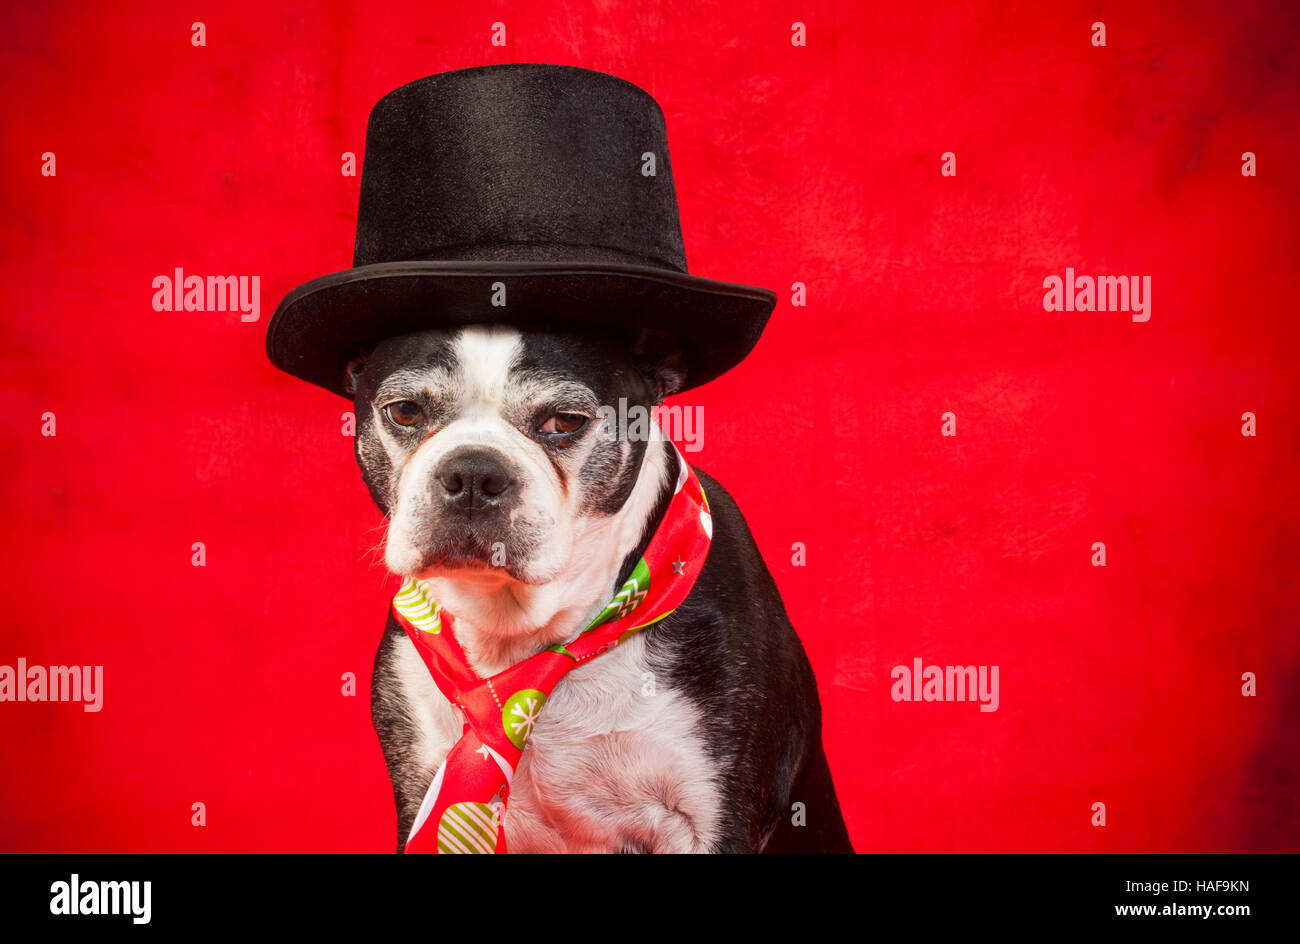 Boston terrier dog with disguise in front of red backdrop - Stock Image